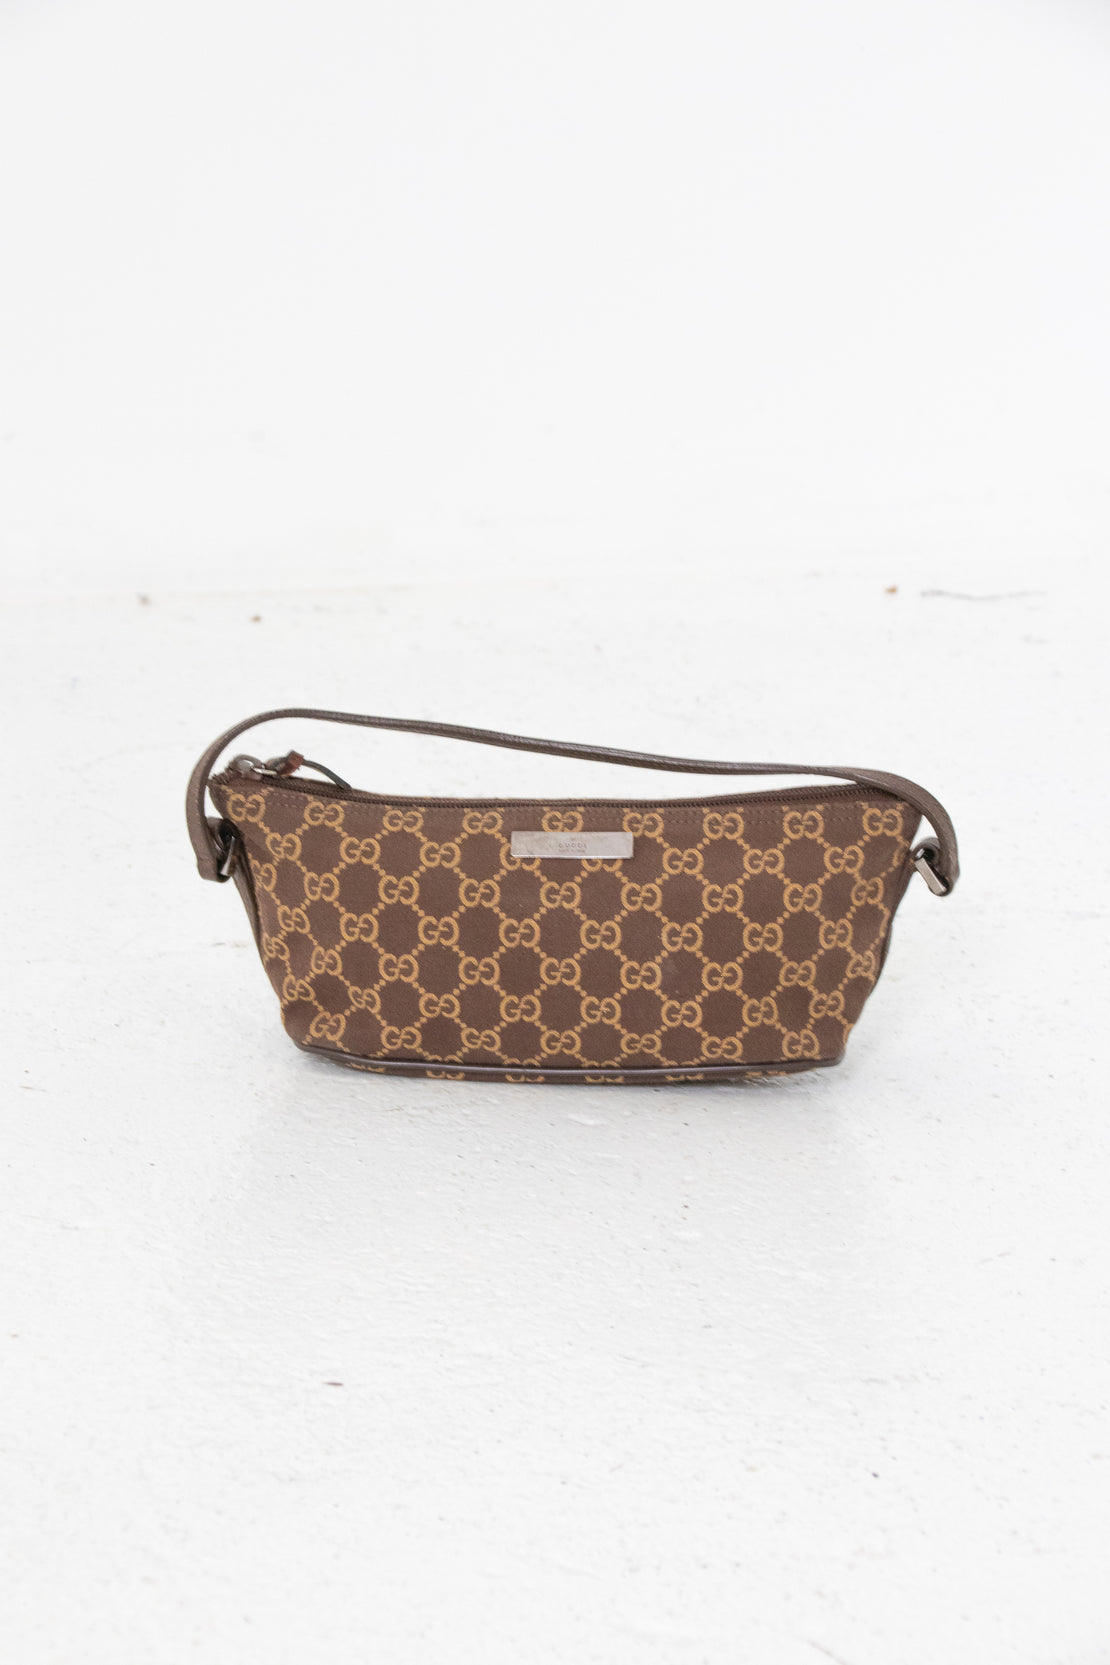 Gucci Monogram Pochette Shoulder Bag